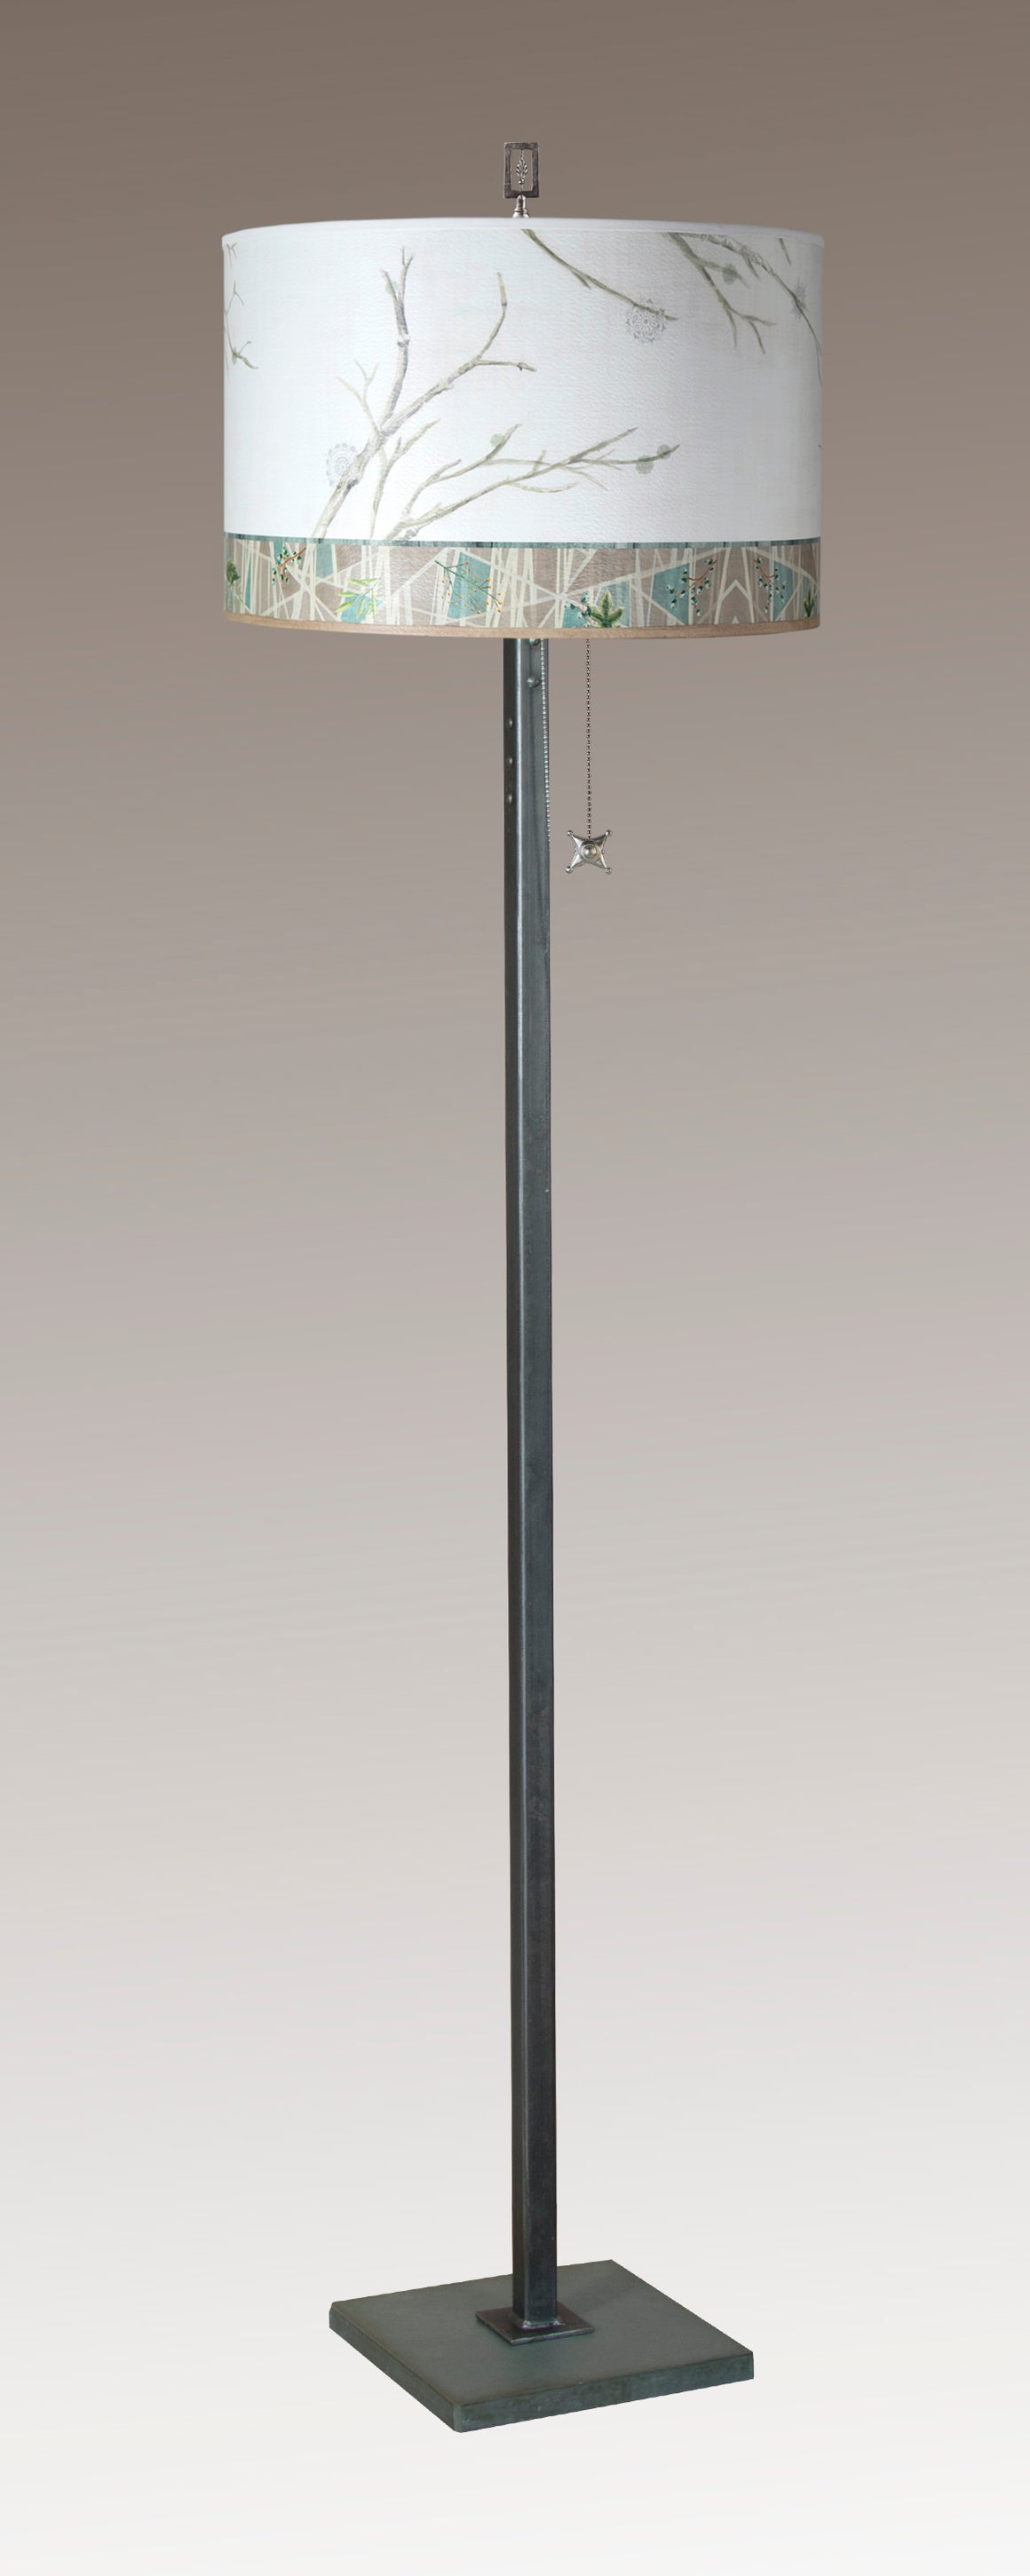 Steel Floor Lamp on Italian Marble with Large Drum Shade in Prism Branch